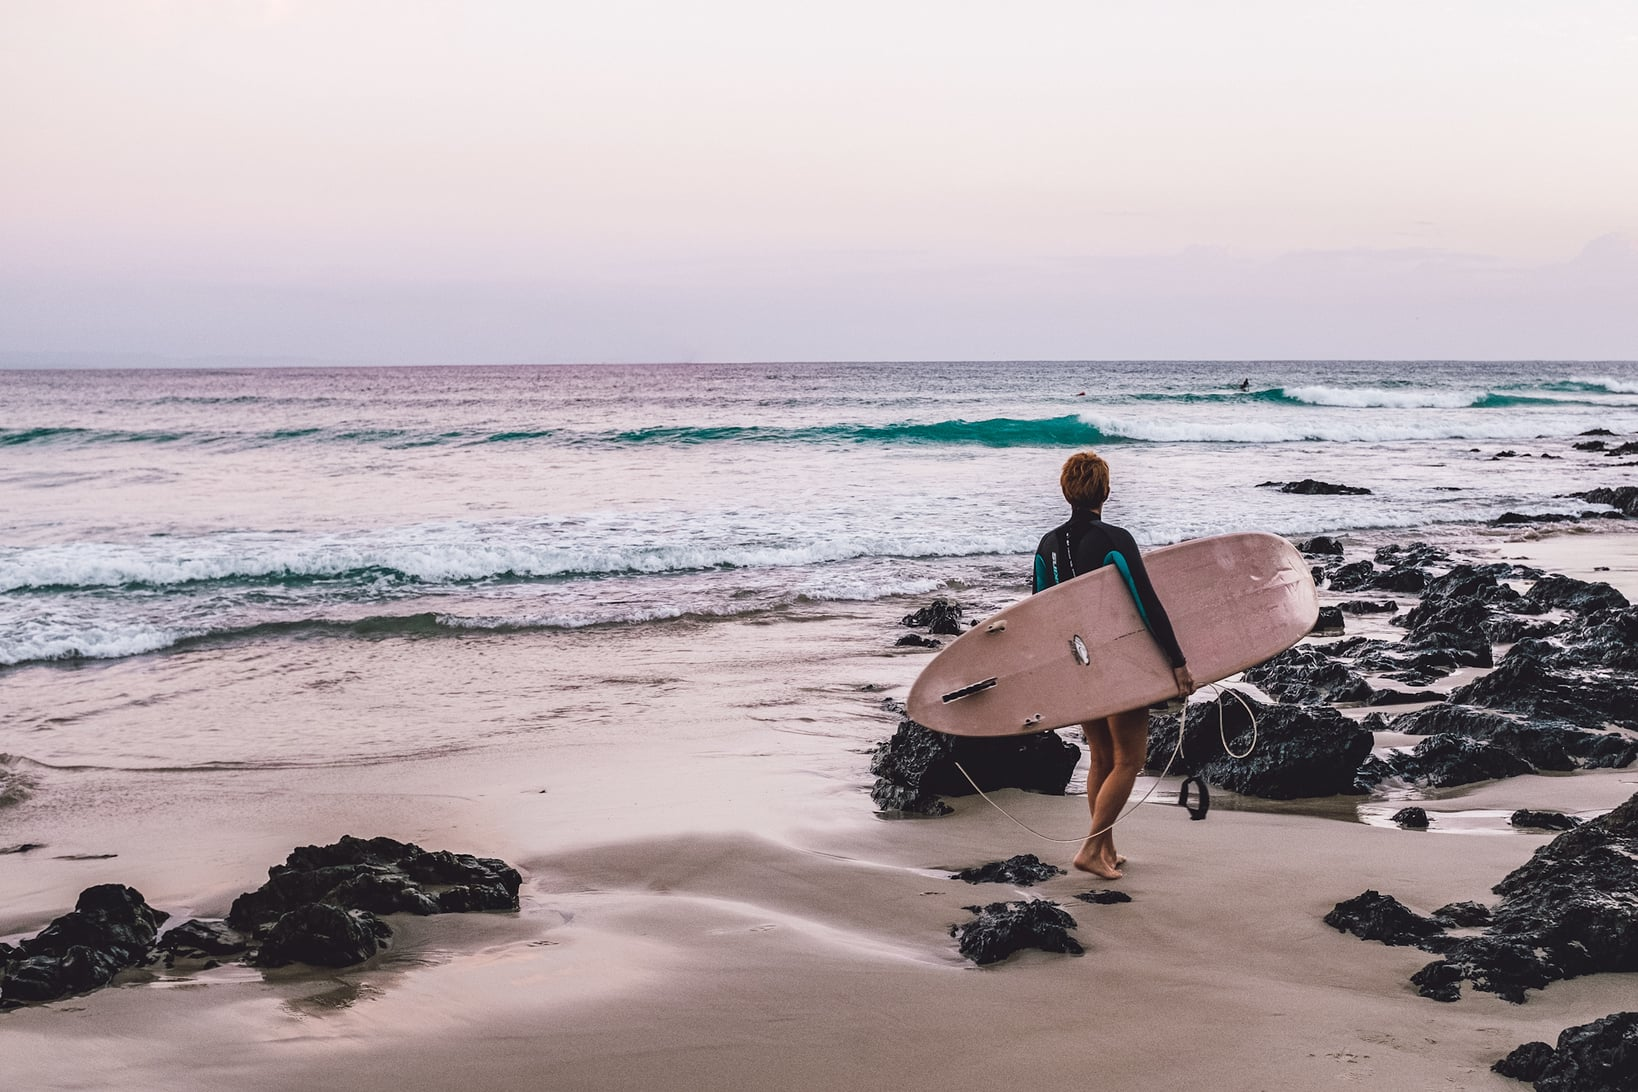 A surfer getting ready for an early morning surf in Australia